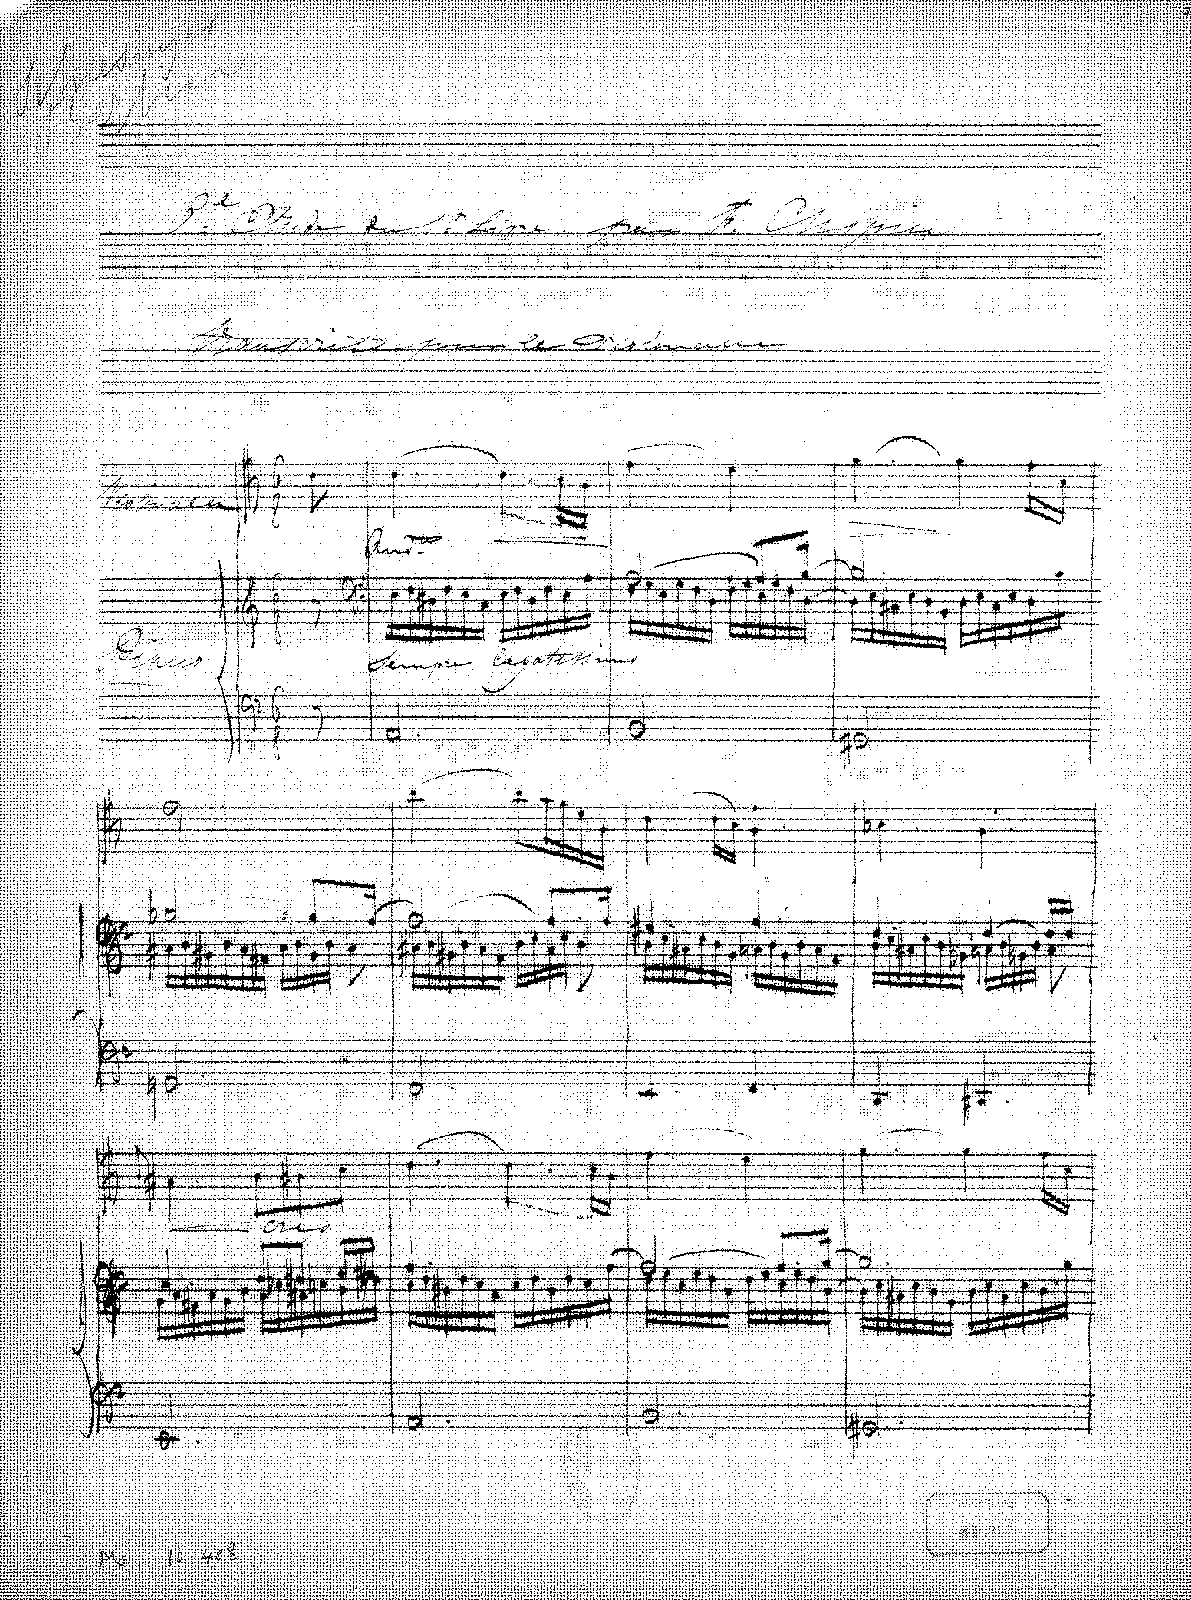 PMLP01969-Chopin - Etude Op10 No6 (Franchomme) for cello and piano manuscript.pdf